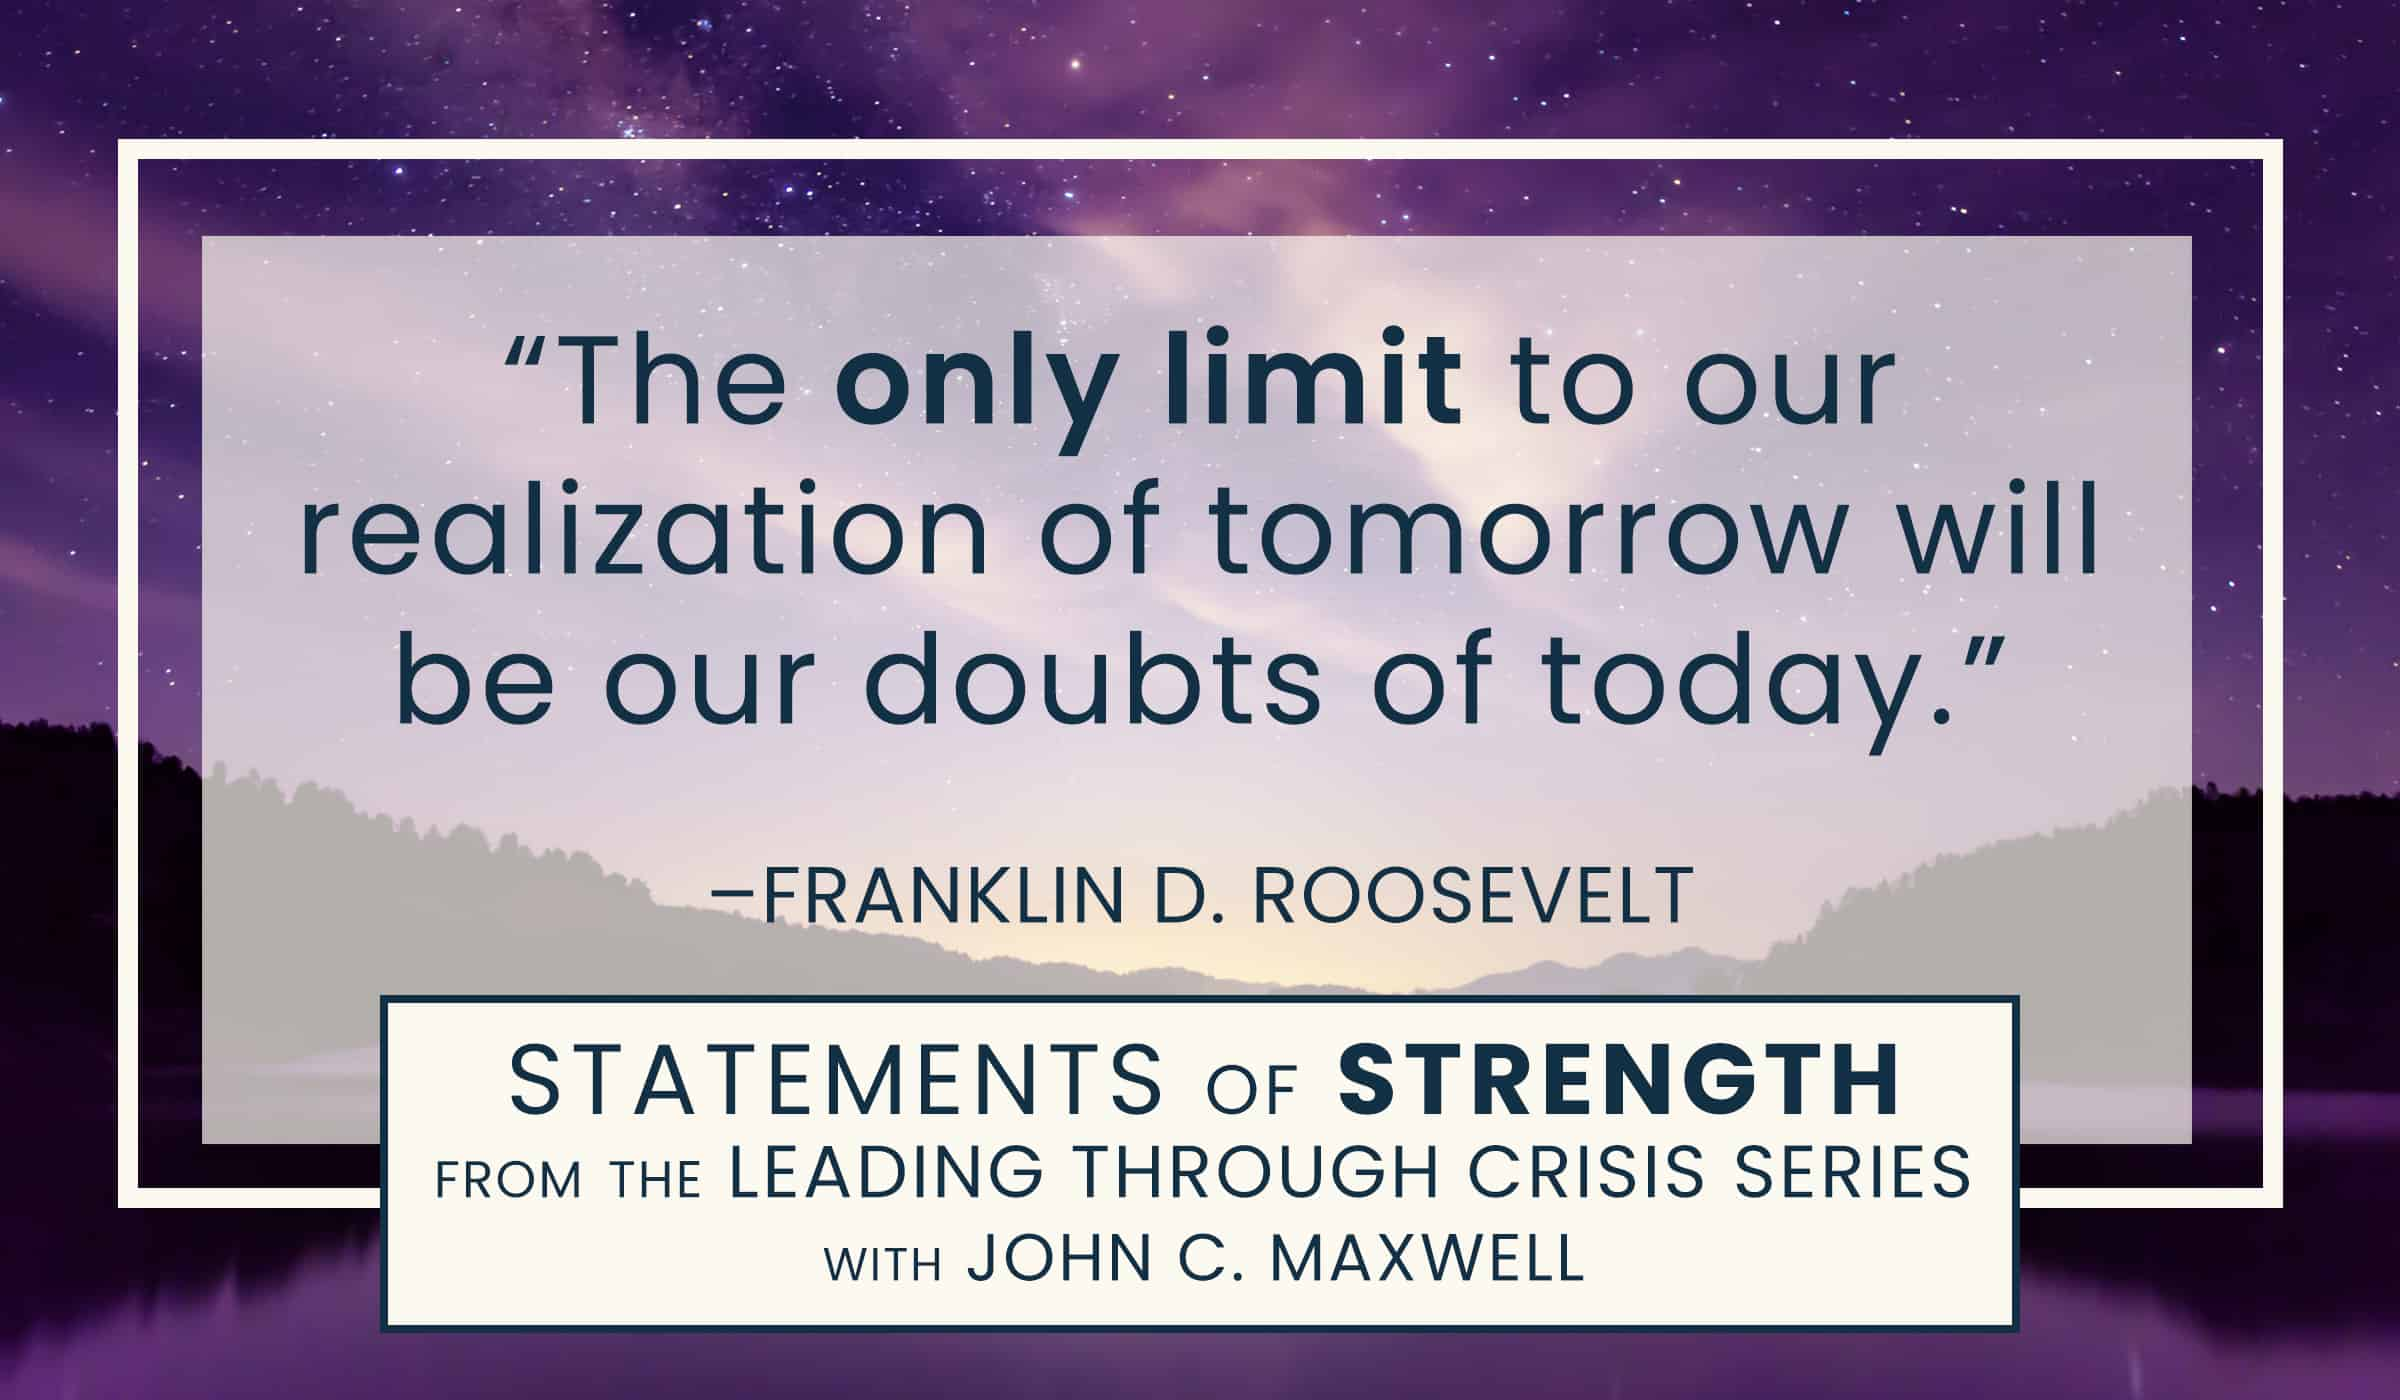 image of quotation picture with text quote by Franklin D Roosevelt